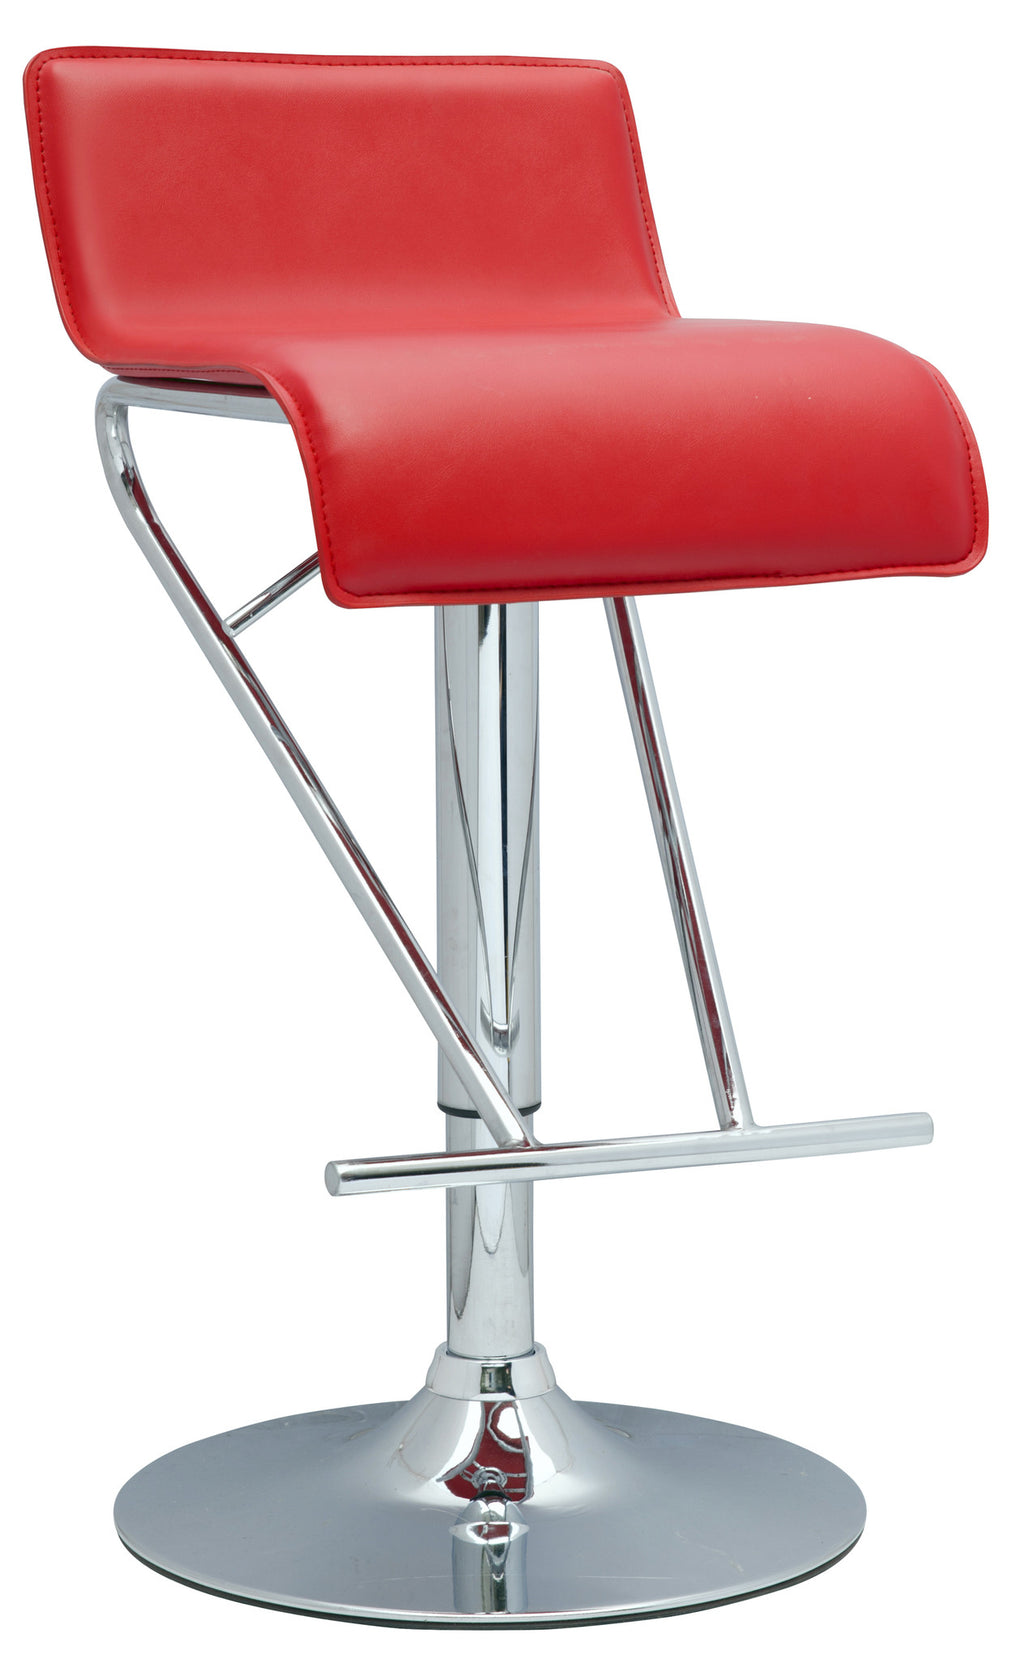 Red Pneumatic Gas Lift Adjustable Height Swivel Stool